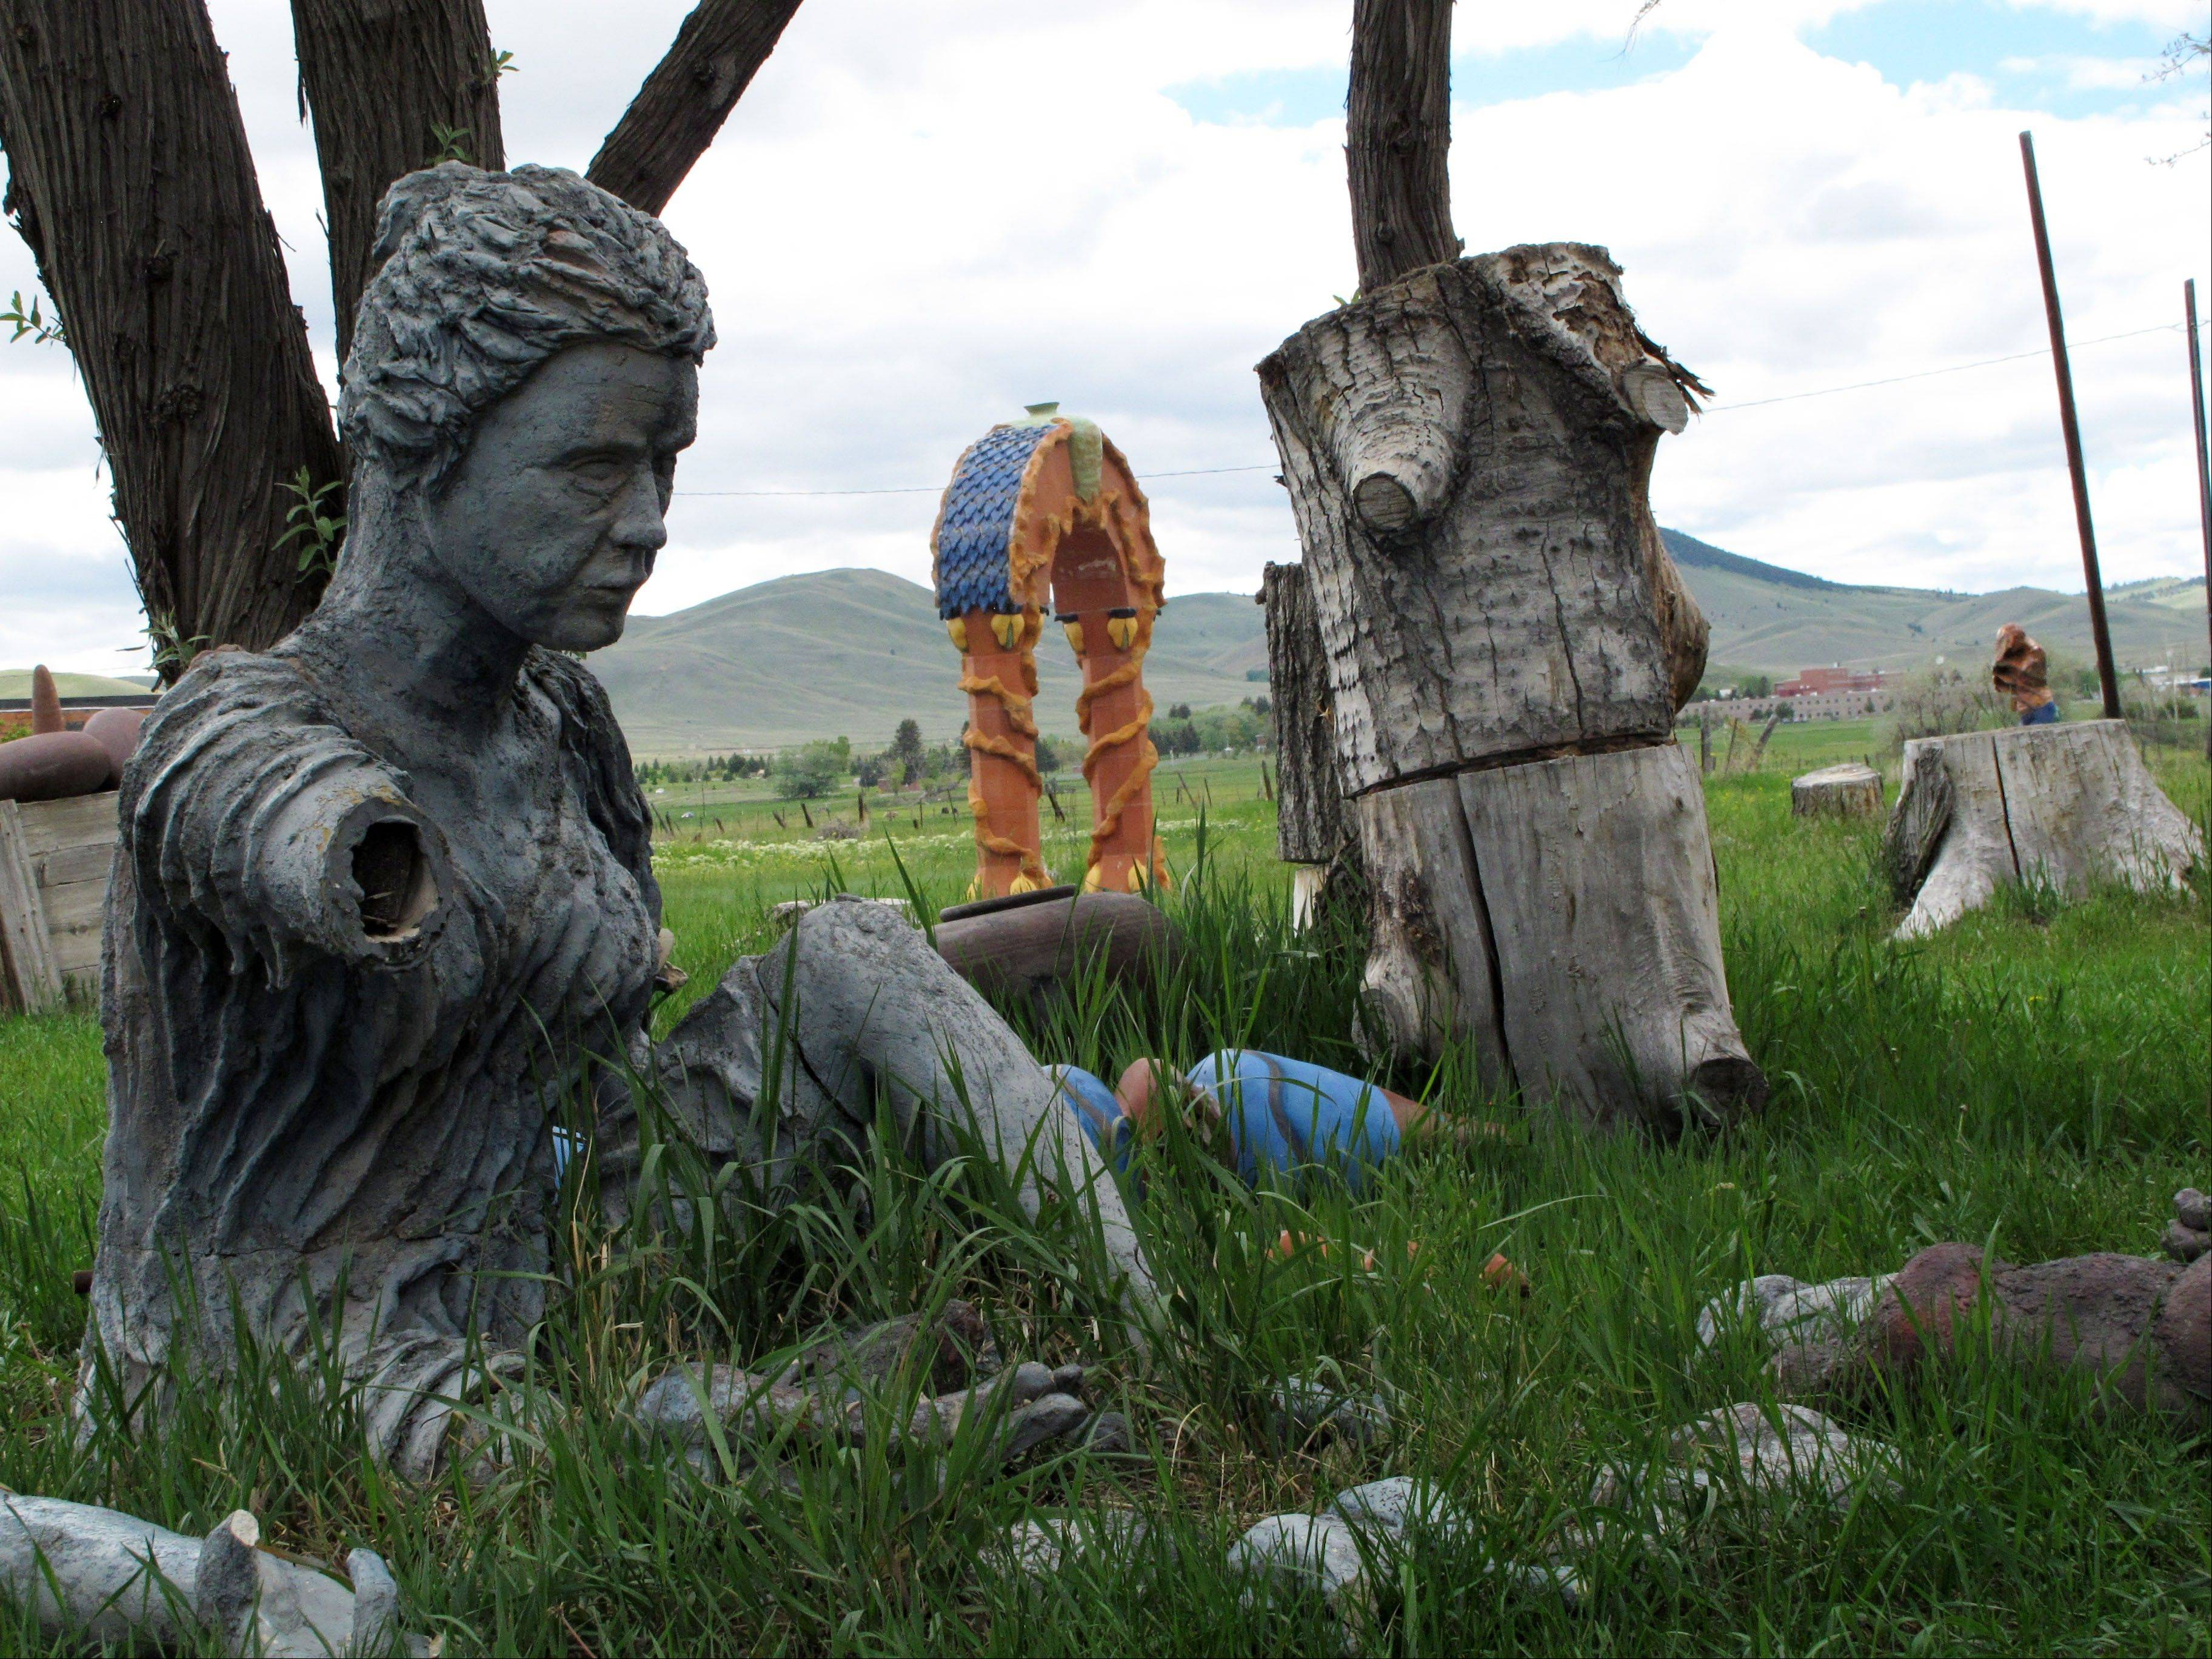 Sculptures are scattered across the 26-acre grounds of the Archie Bray Foundation for the Ceramic Arts near Helena, Mont. The foundation offers artist residencies and free self-guided walking tours on the grounds of a former brick factory.